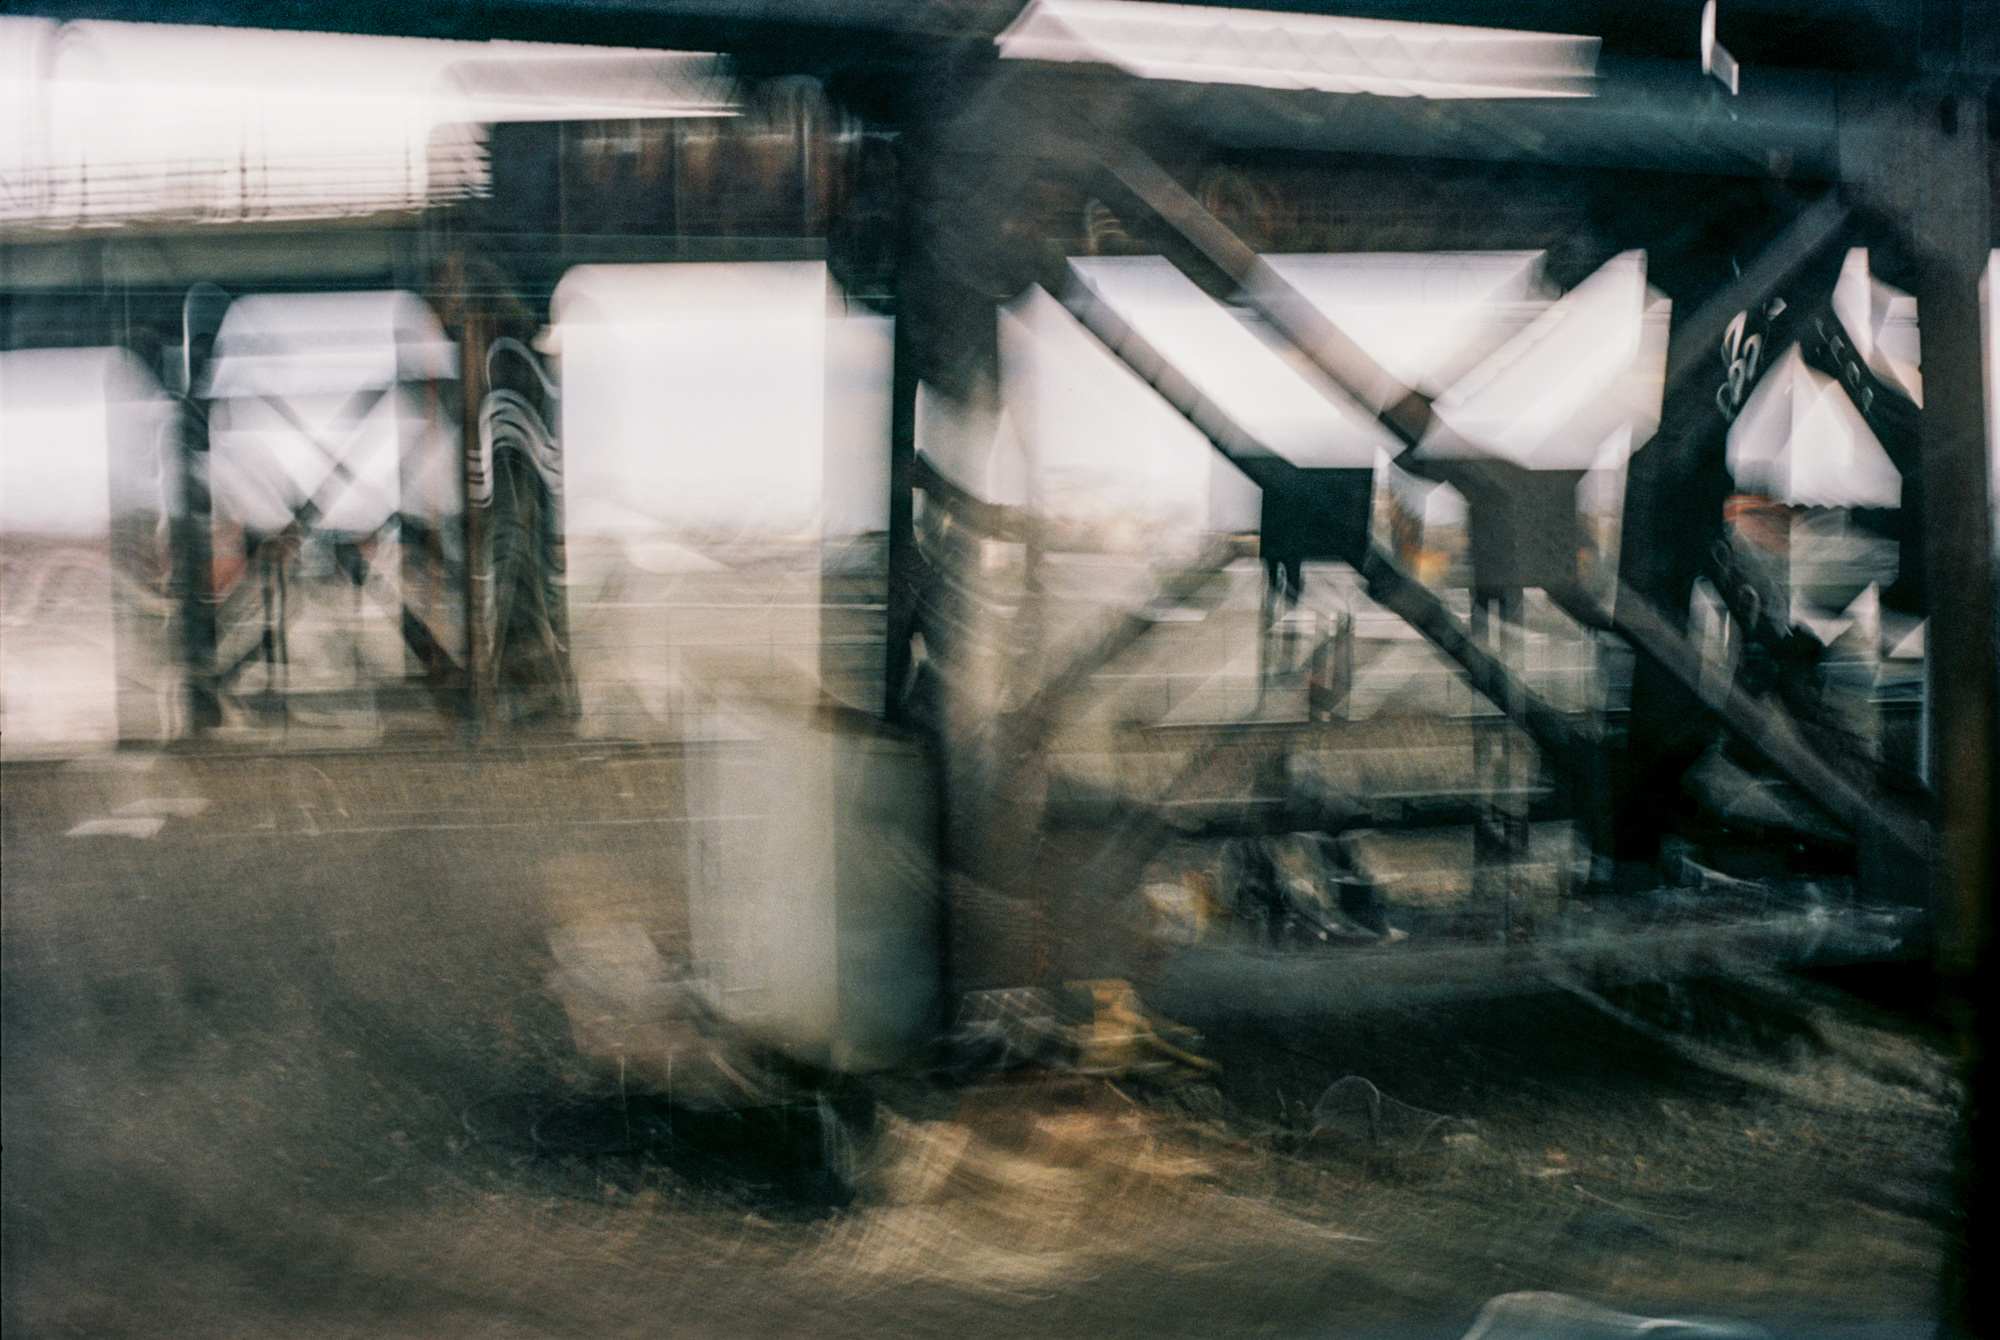 """A photo by Philip K. Howard in his """"Peripheral Visions'' series, much of it about transportation infrastructure, some of it crumbling. To see more,   please hit this link  ."""